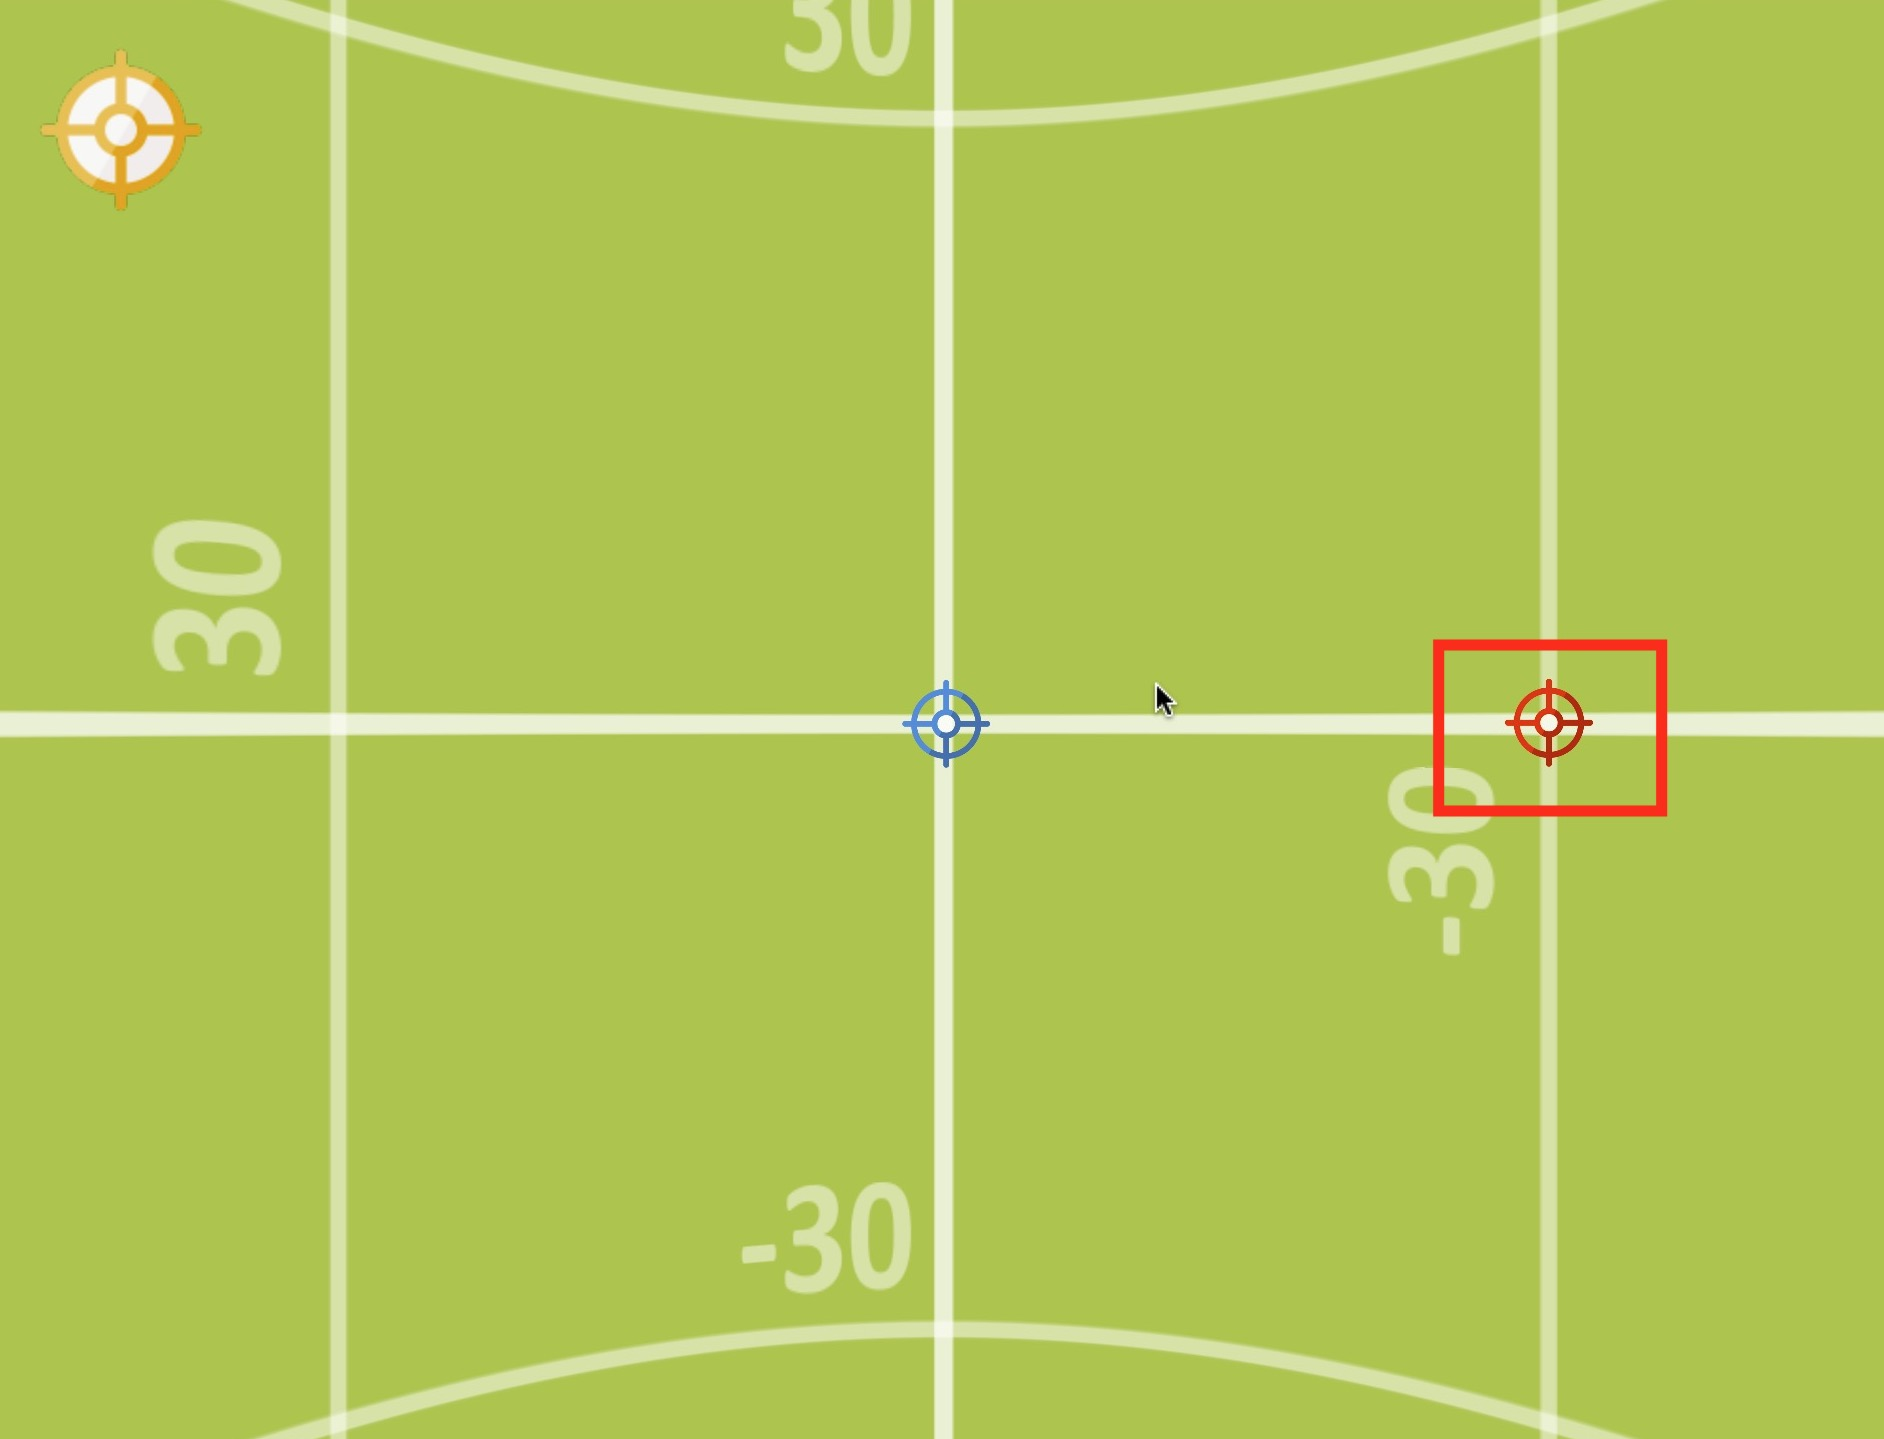 Figure #6: 2nd Point Hotspot positioned on the panorama